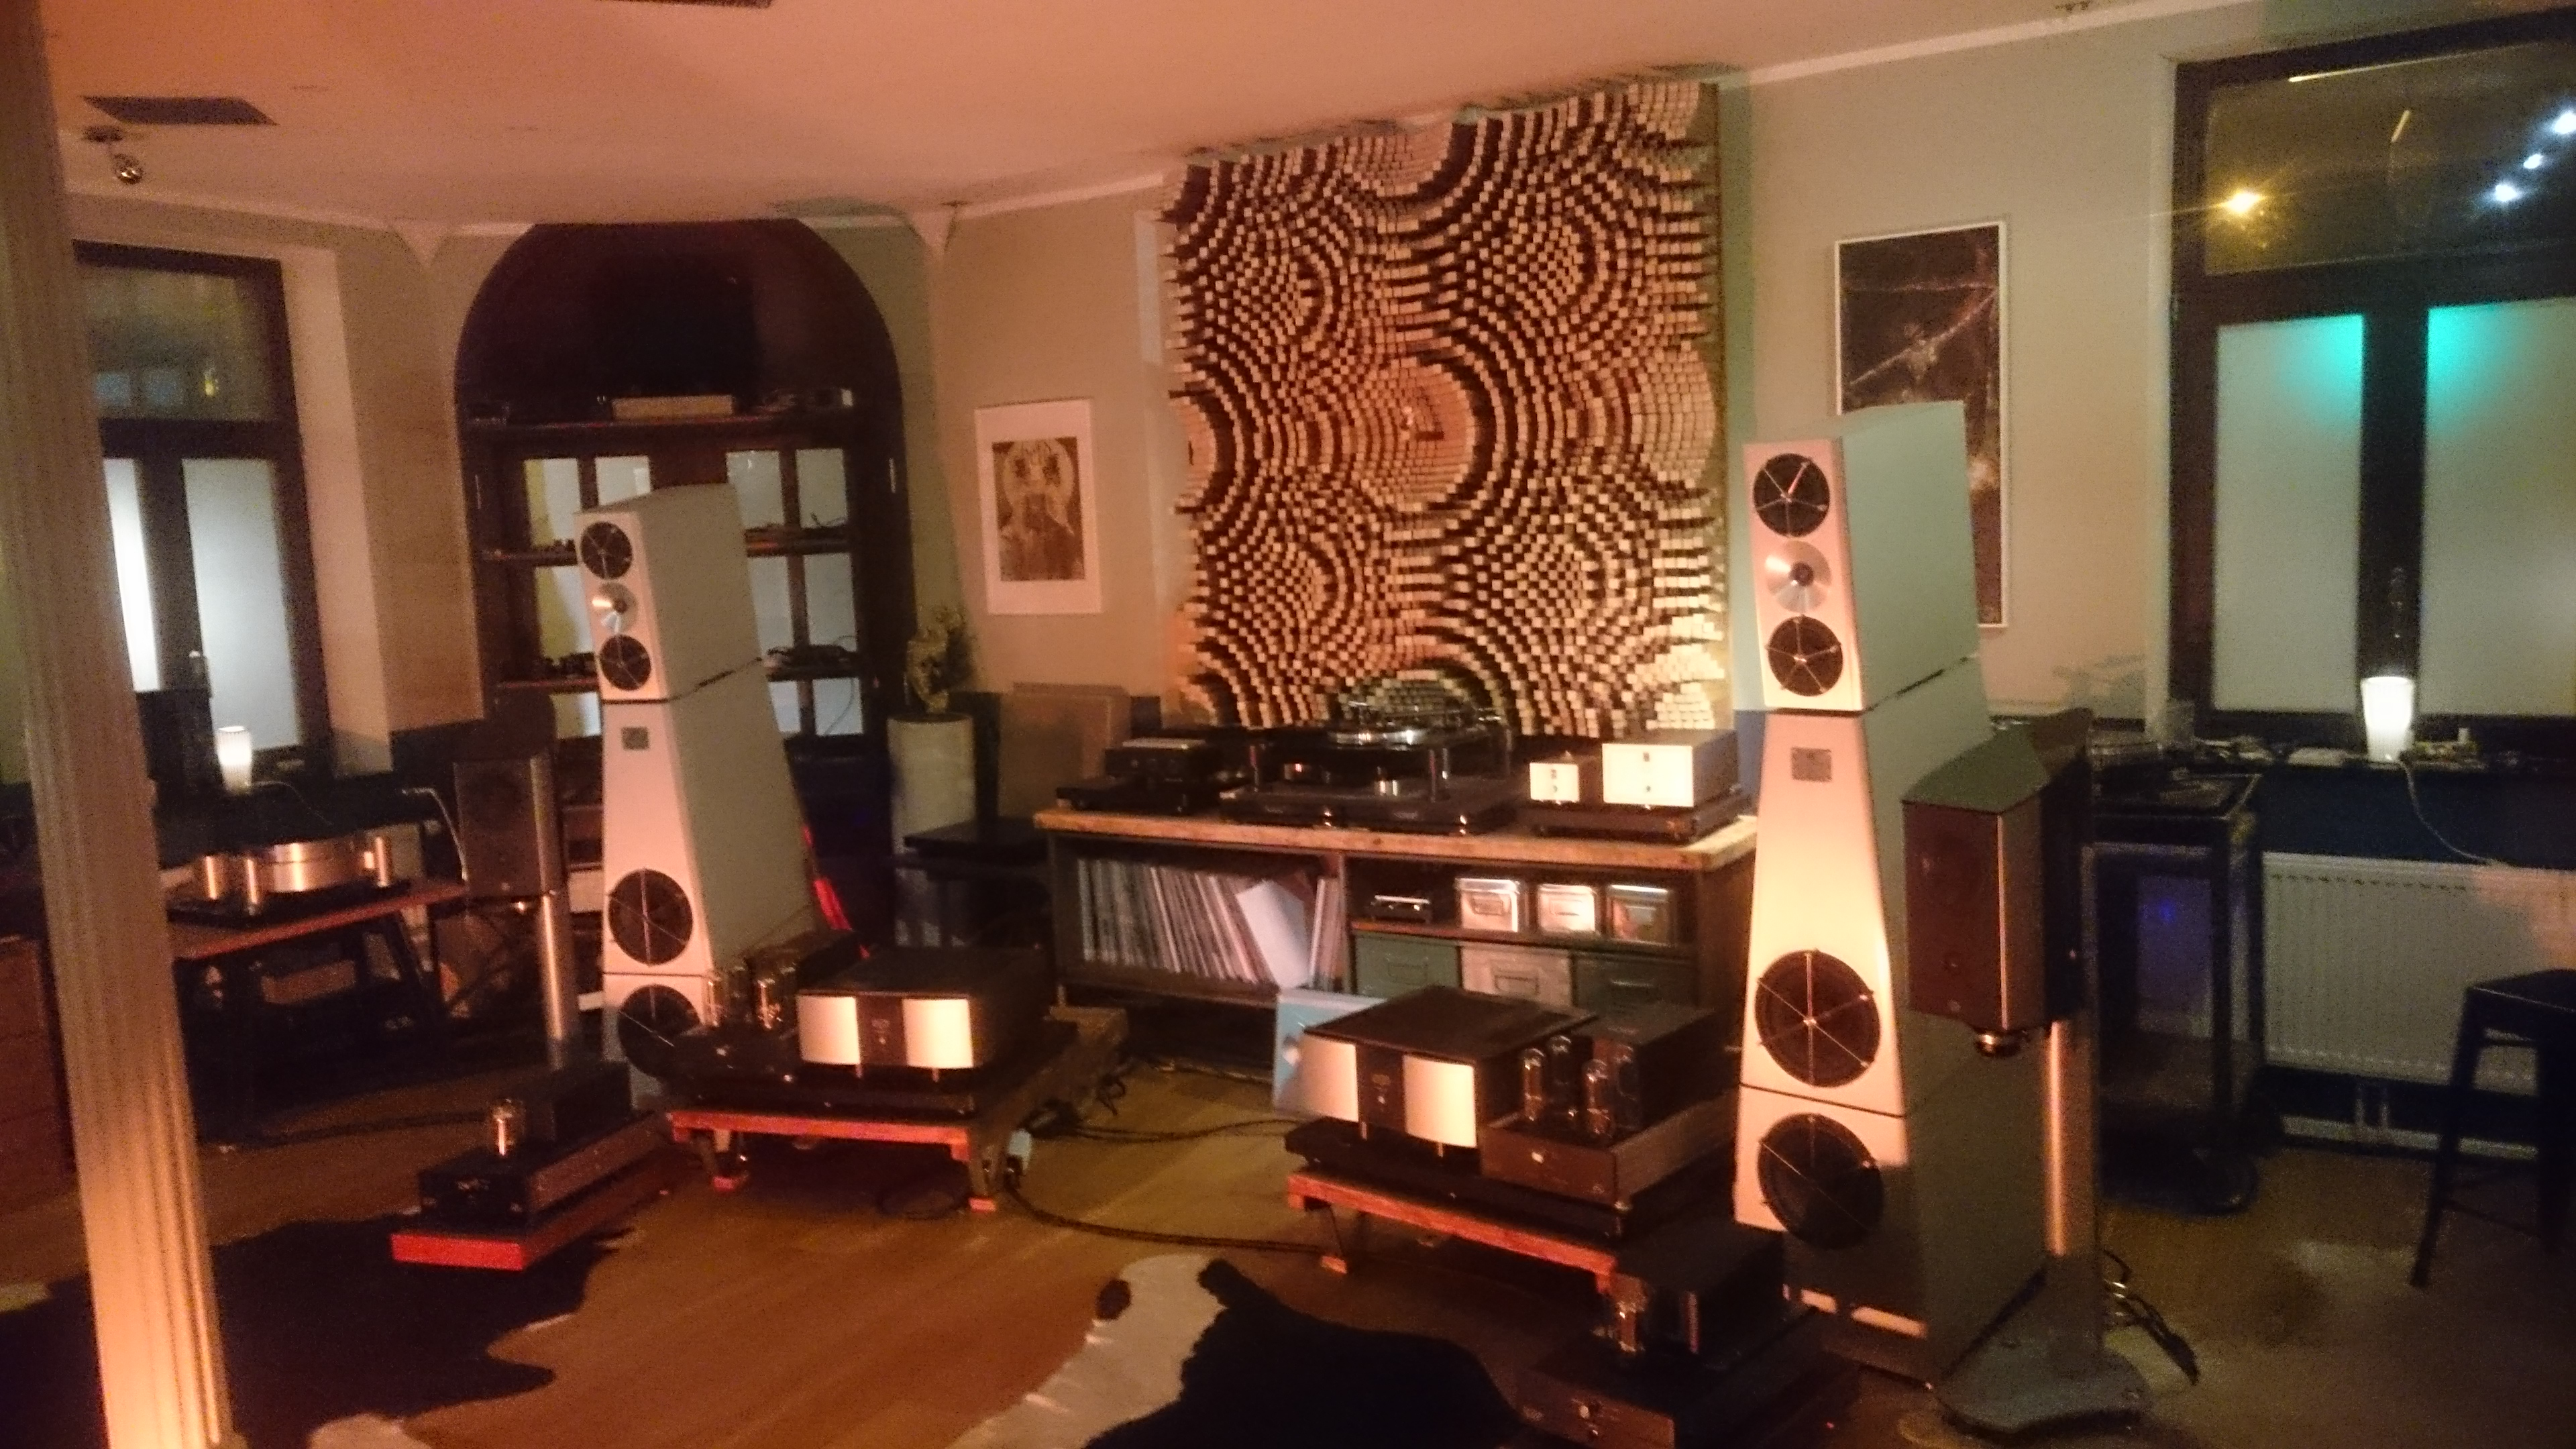 Acoustic diffuser QRD67 - RDacoustic customer installation